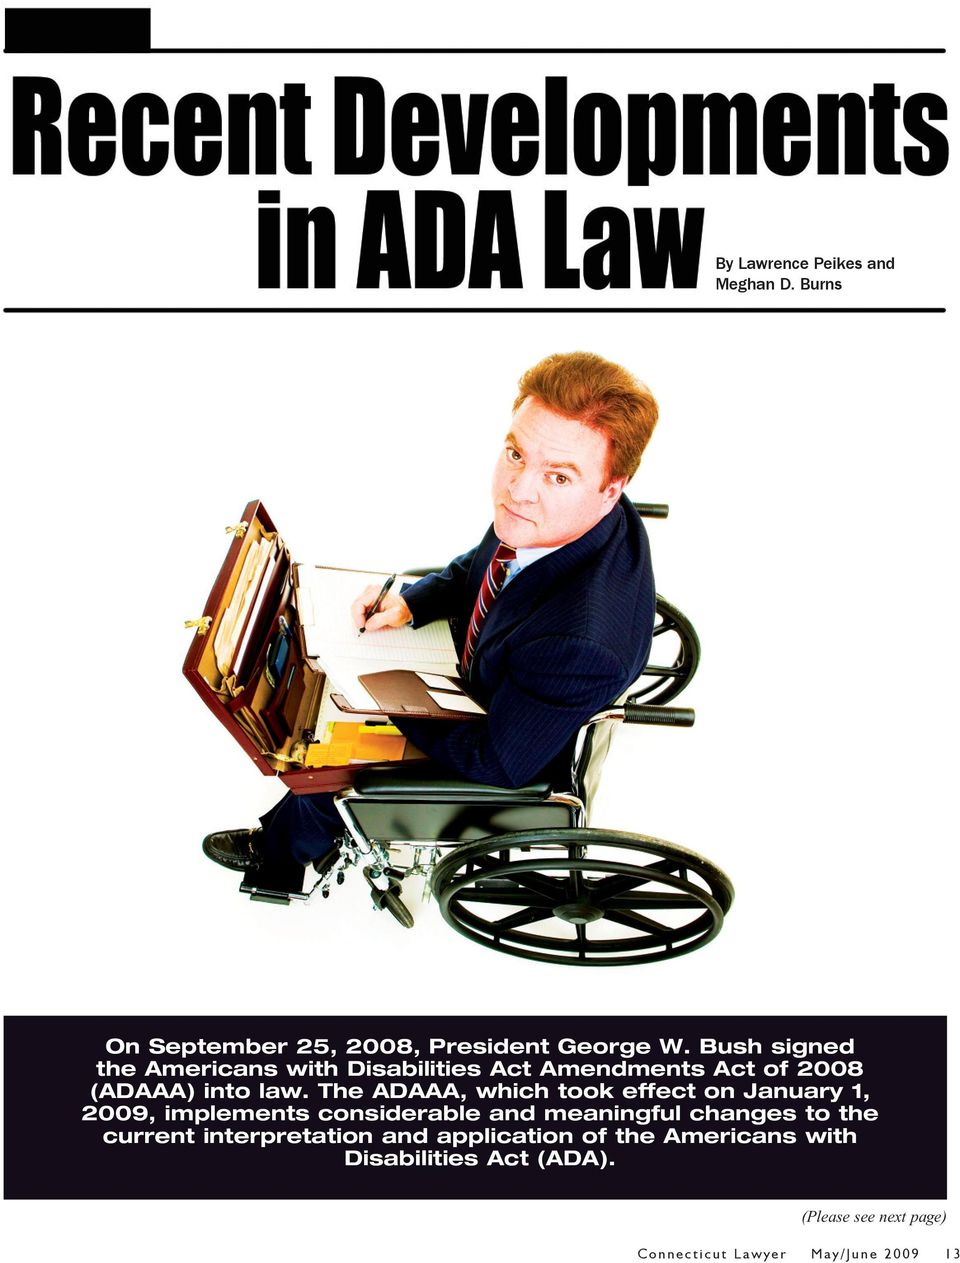 The ADAAA, which took effect on January 1, 2009, implements considerable and meaningful changes to the